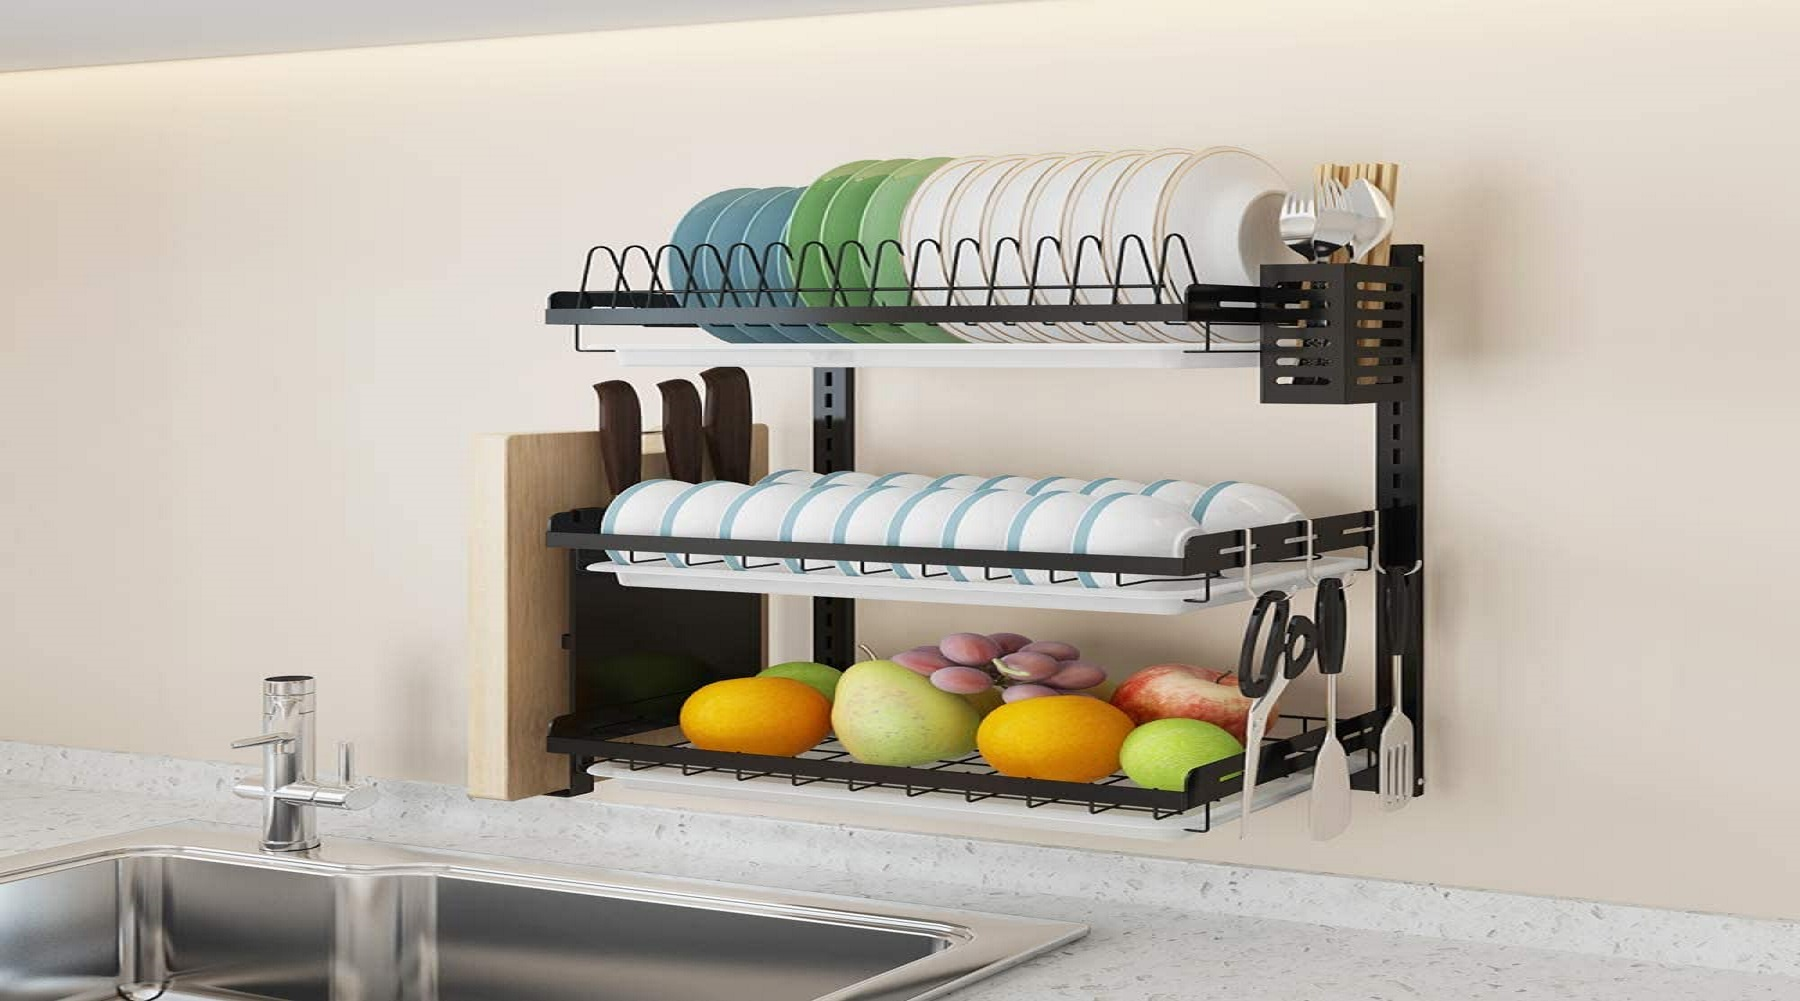 Best Wall Mounted Dish Rack